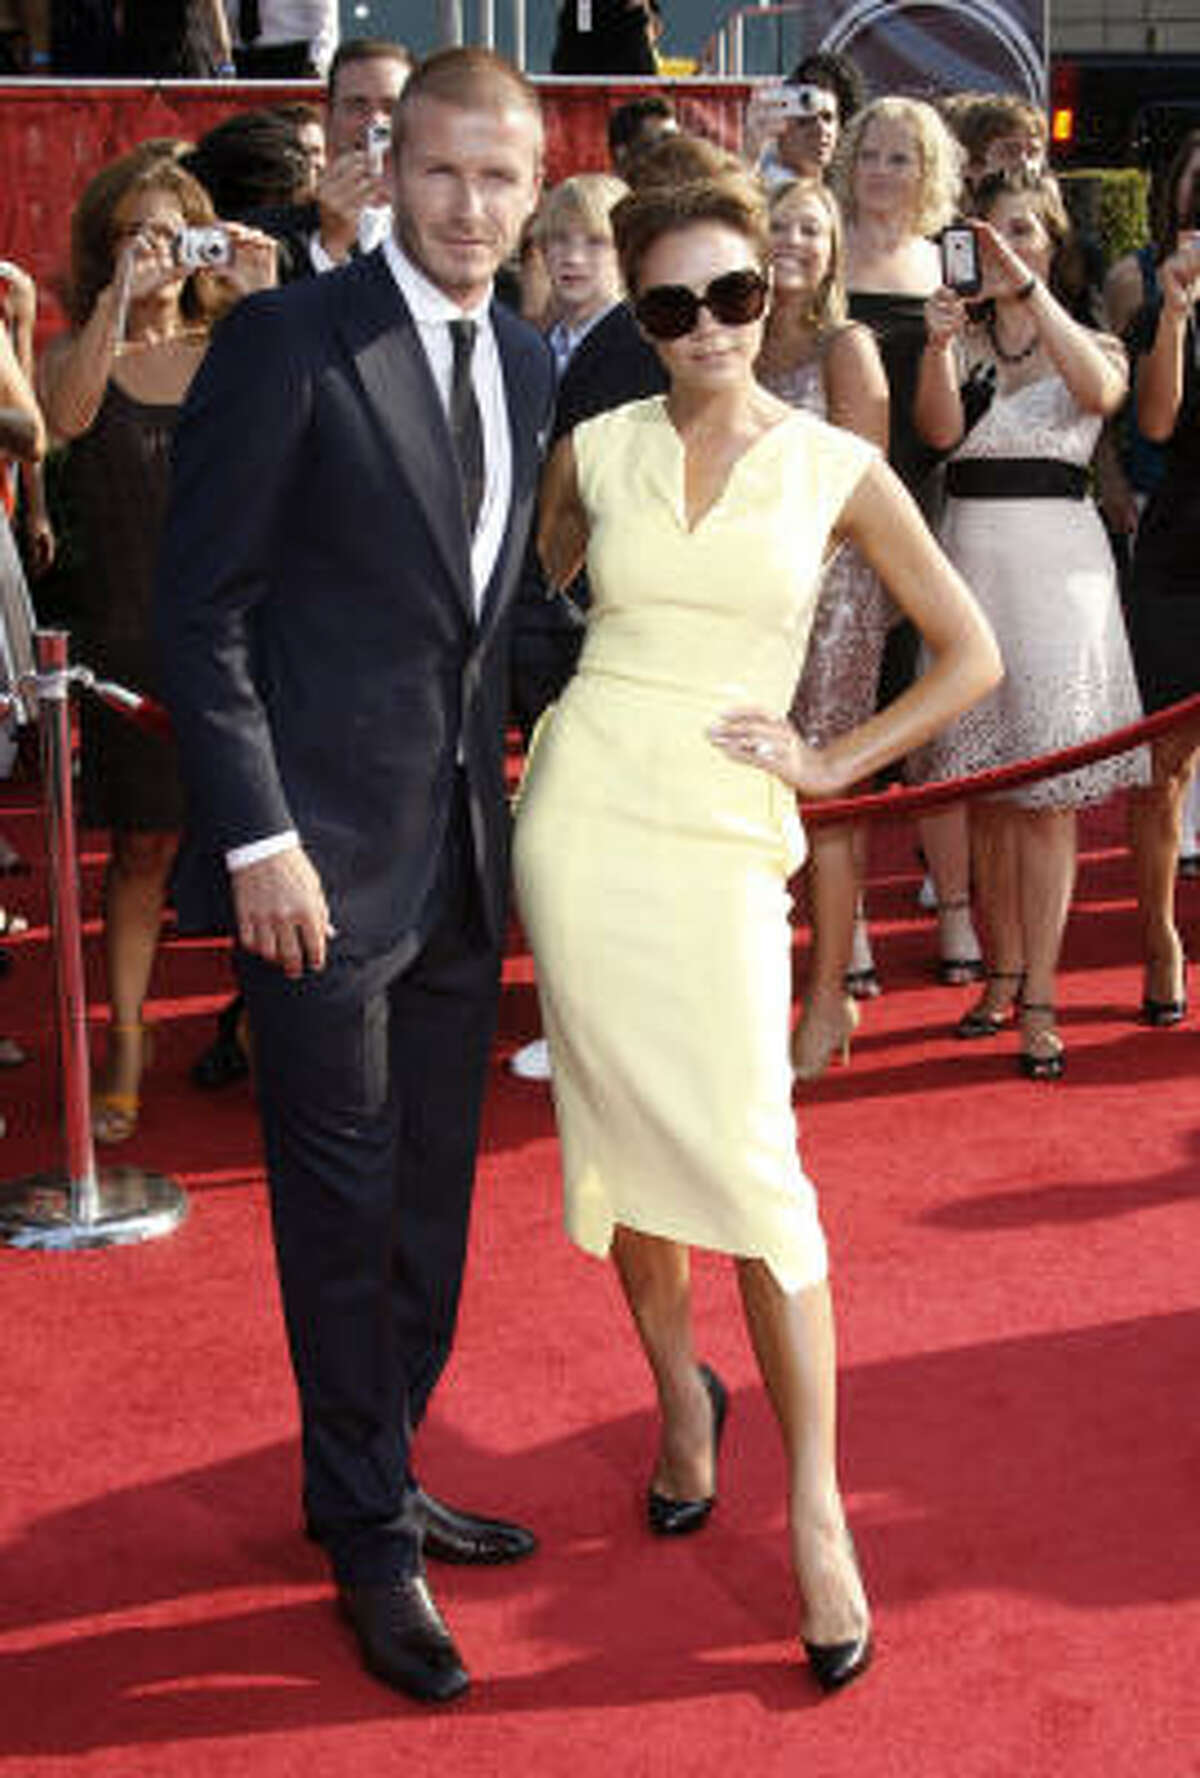 David Beckham and wife Victoria Beckham arrive at the ESPYs Awards on Wednesday July 16, 2008 in Los Angeles.